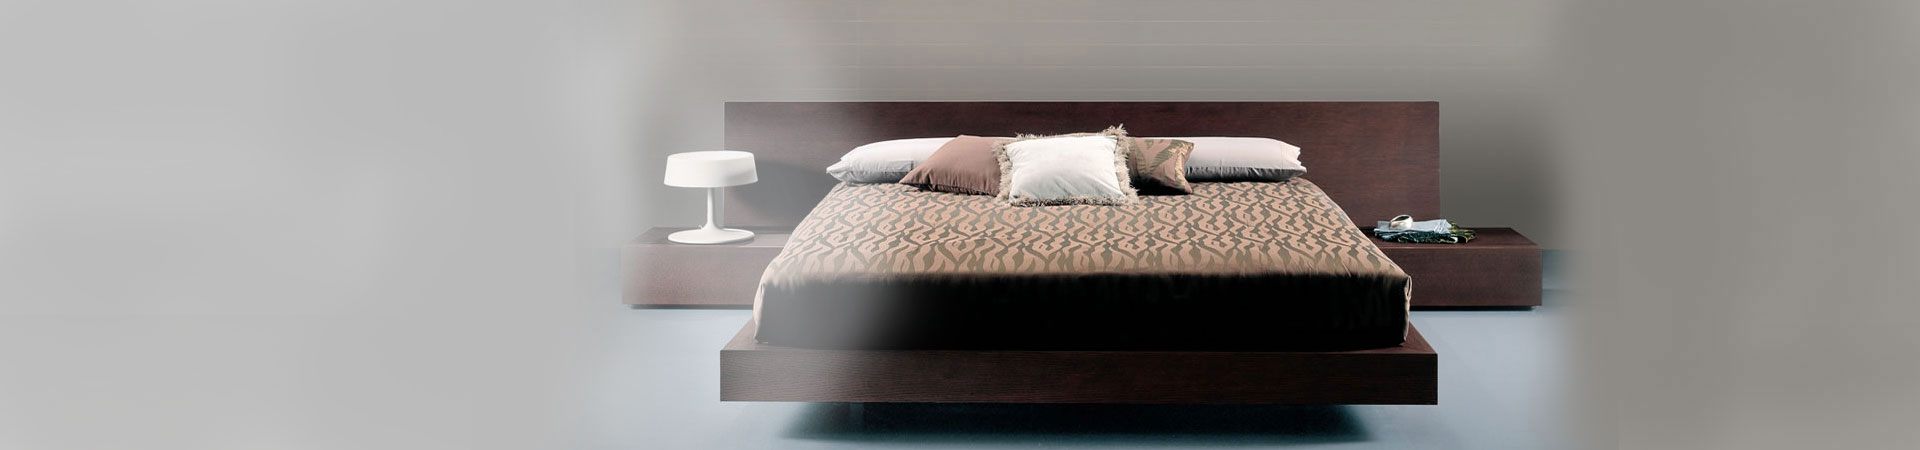 Release your senses! Create a space of <br />comfort and coziness with our plush